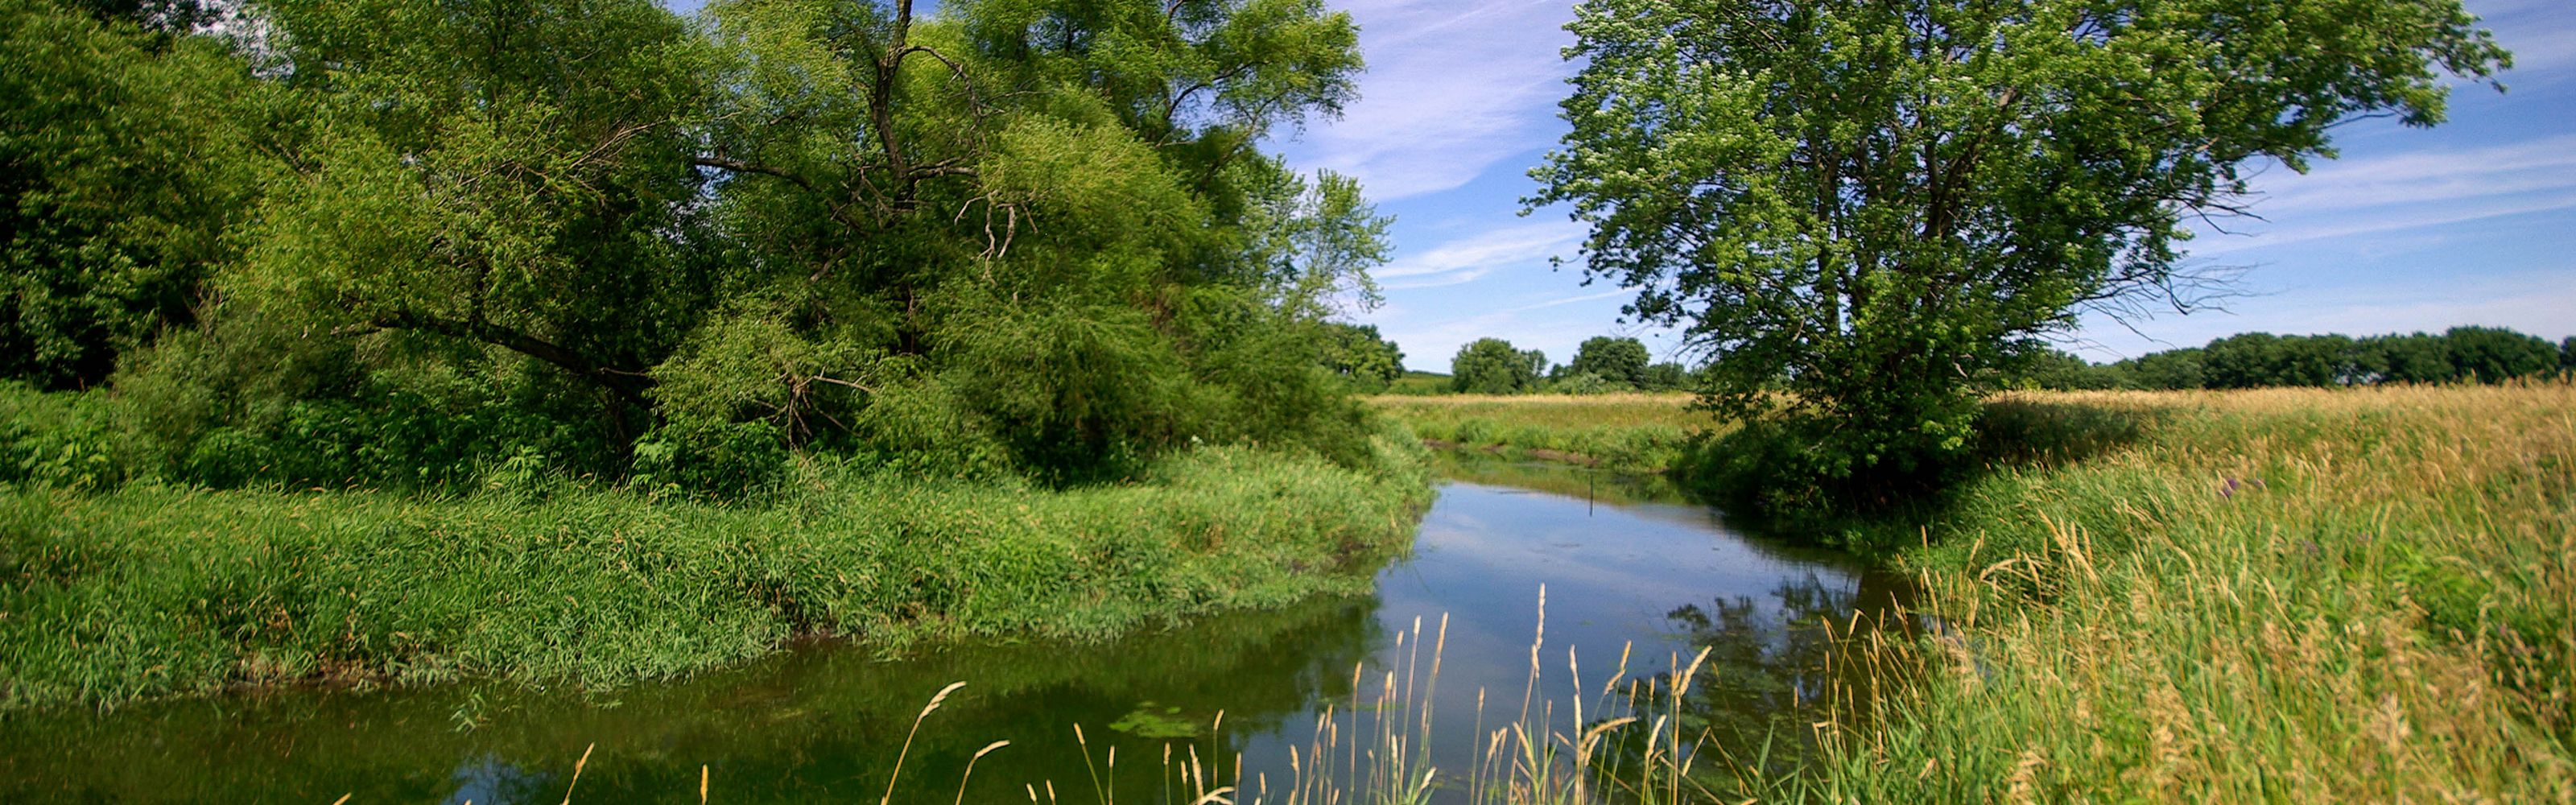 Oxbow located on the Boone River